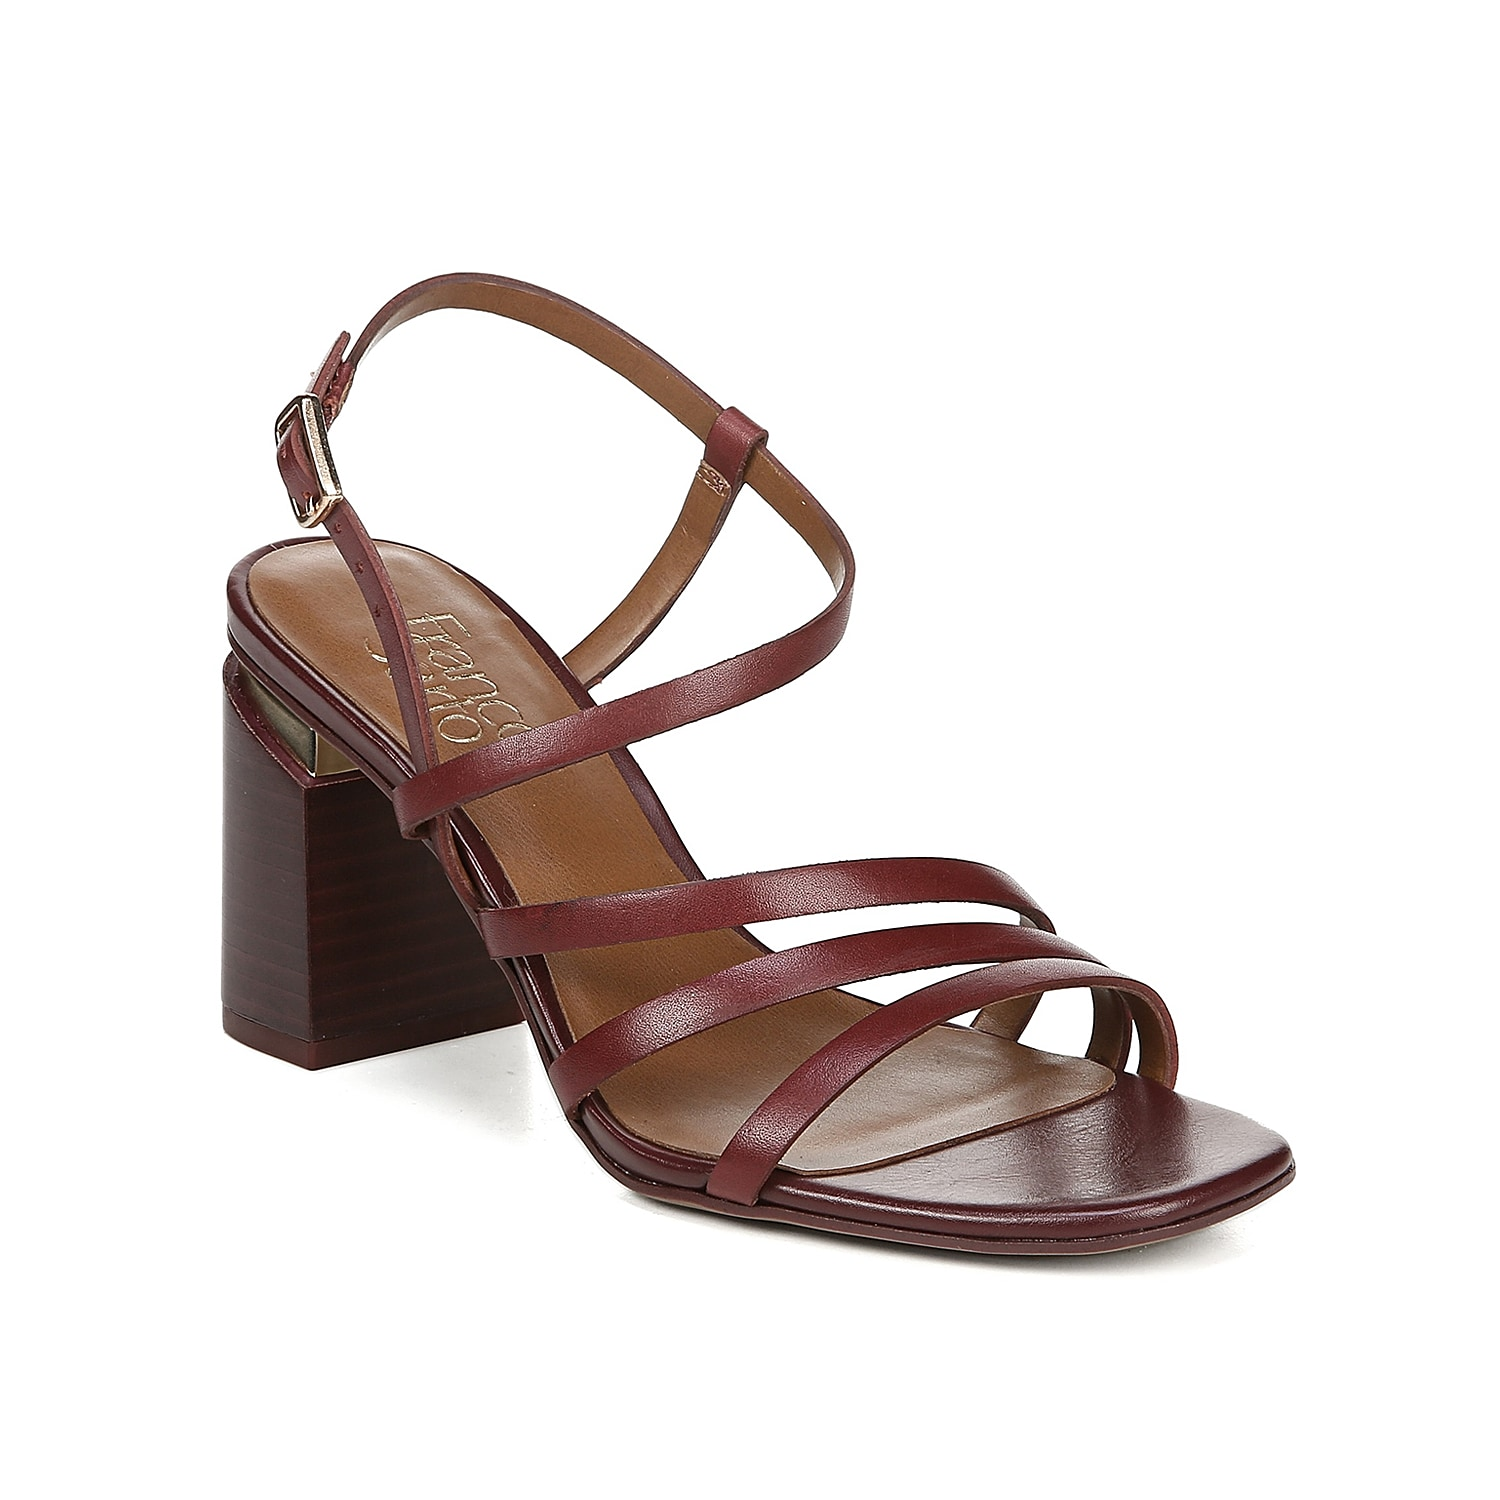 Inspired by \\\'90s styling, the Qitara sandal from Franco Sarto will keep you feeling chic in any outfit. Skinny asymmetrical straps and a square toe further the nostalgic vibe of this block-heeled pair.